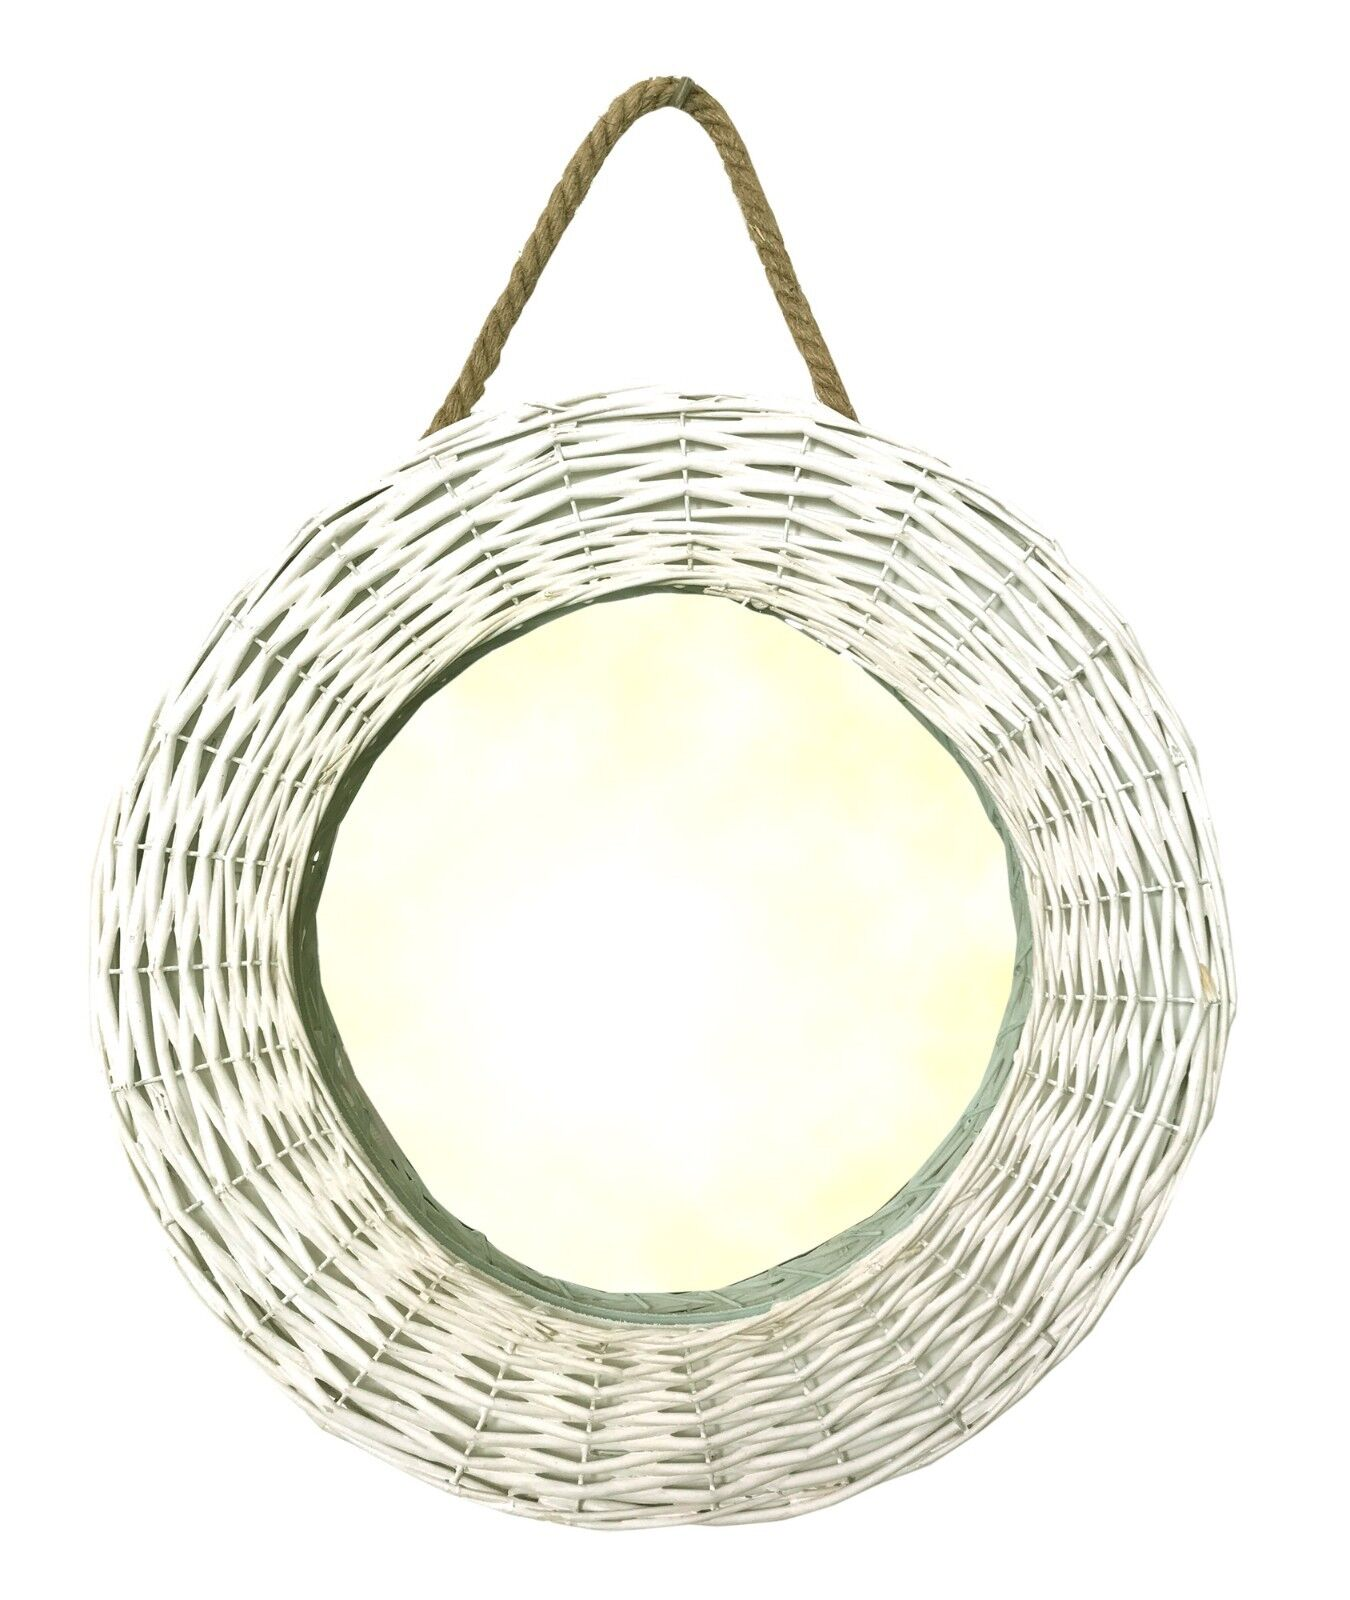 Country Style White Painted Wicker Rope Bedroom Hall Wall Hanging Round Mirror For Sale Online Ebay